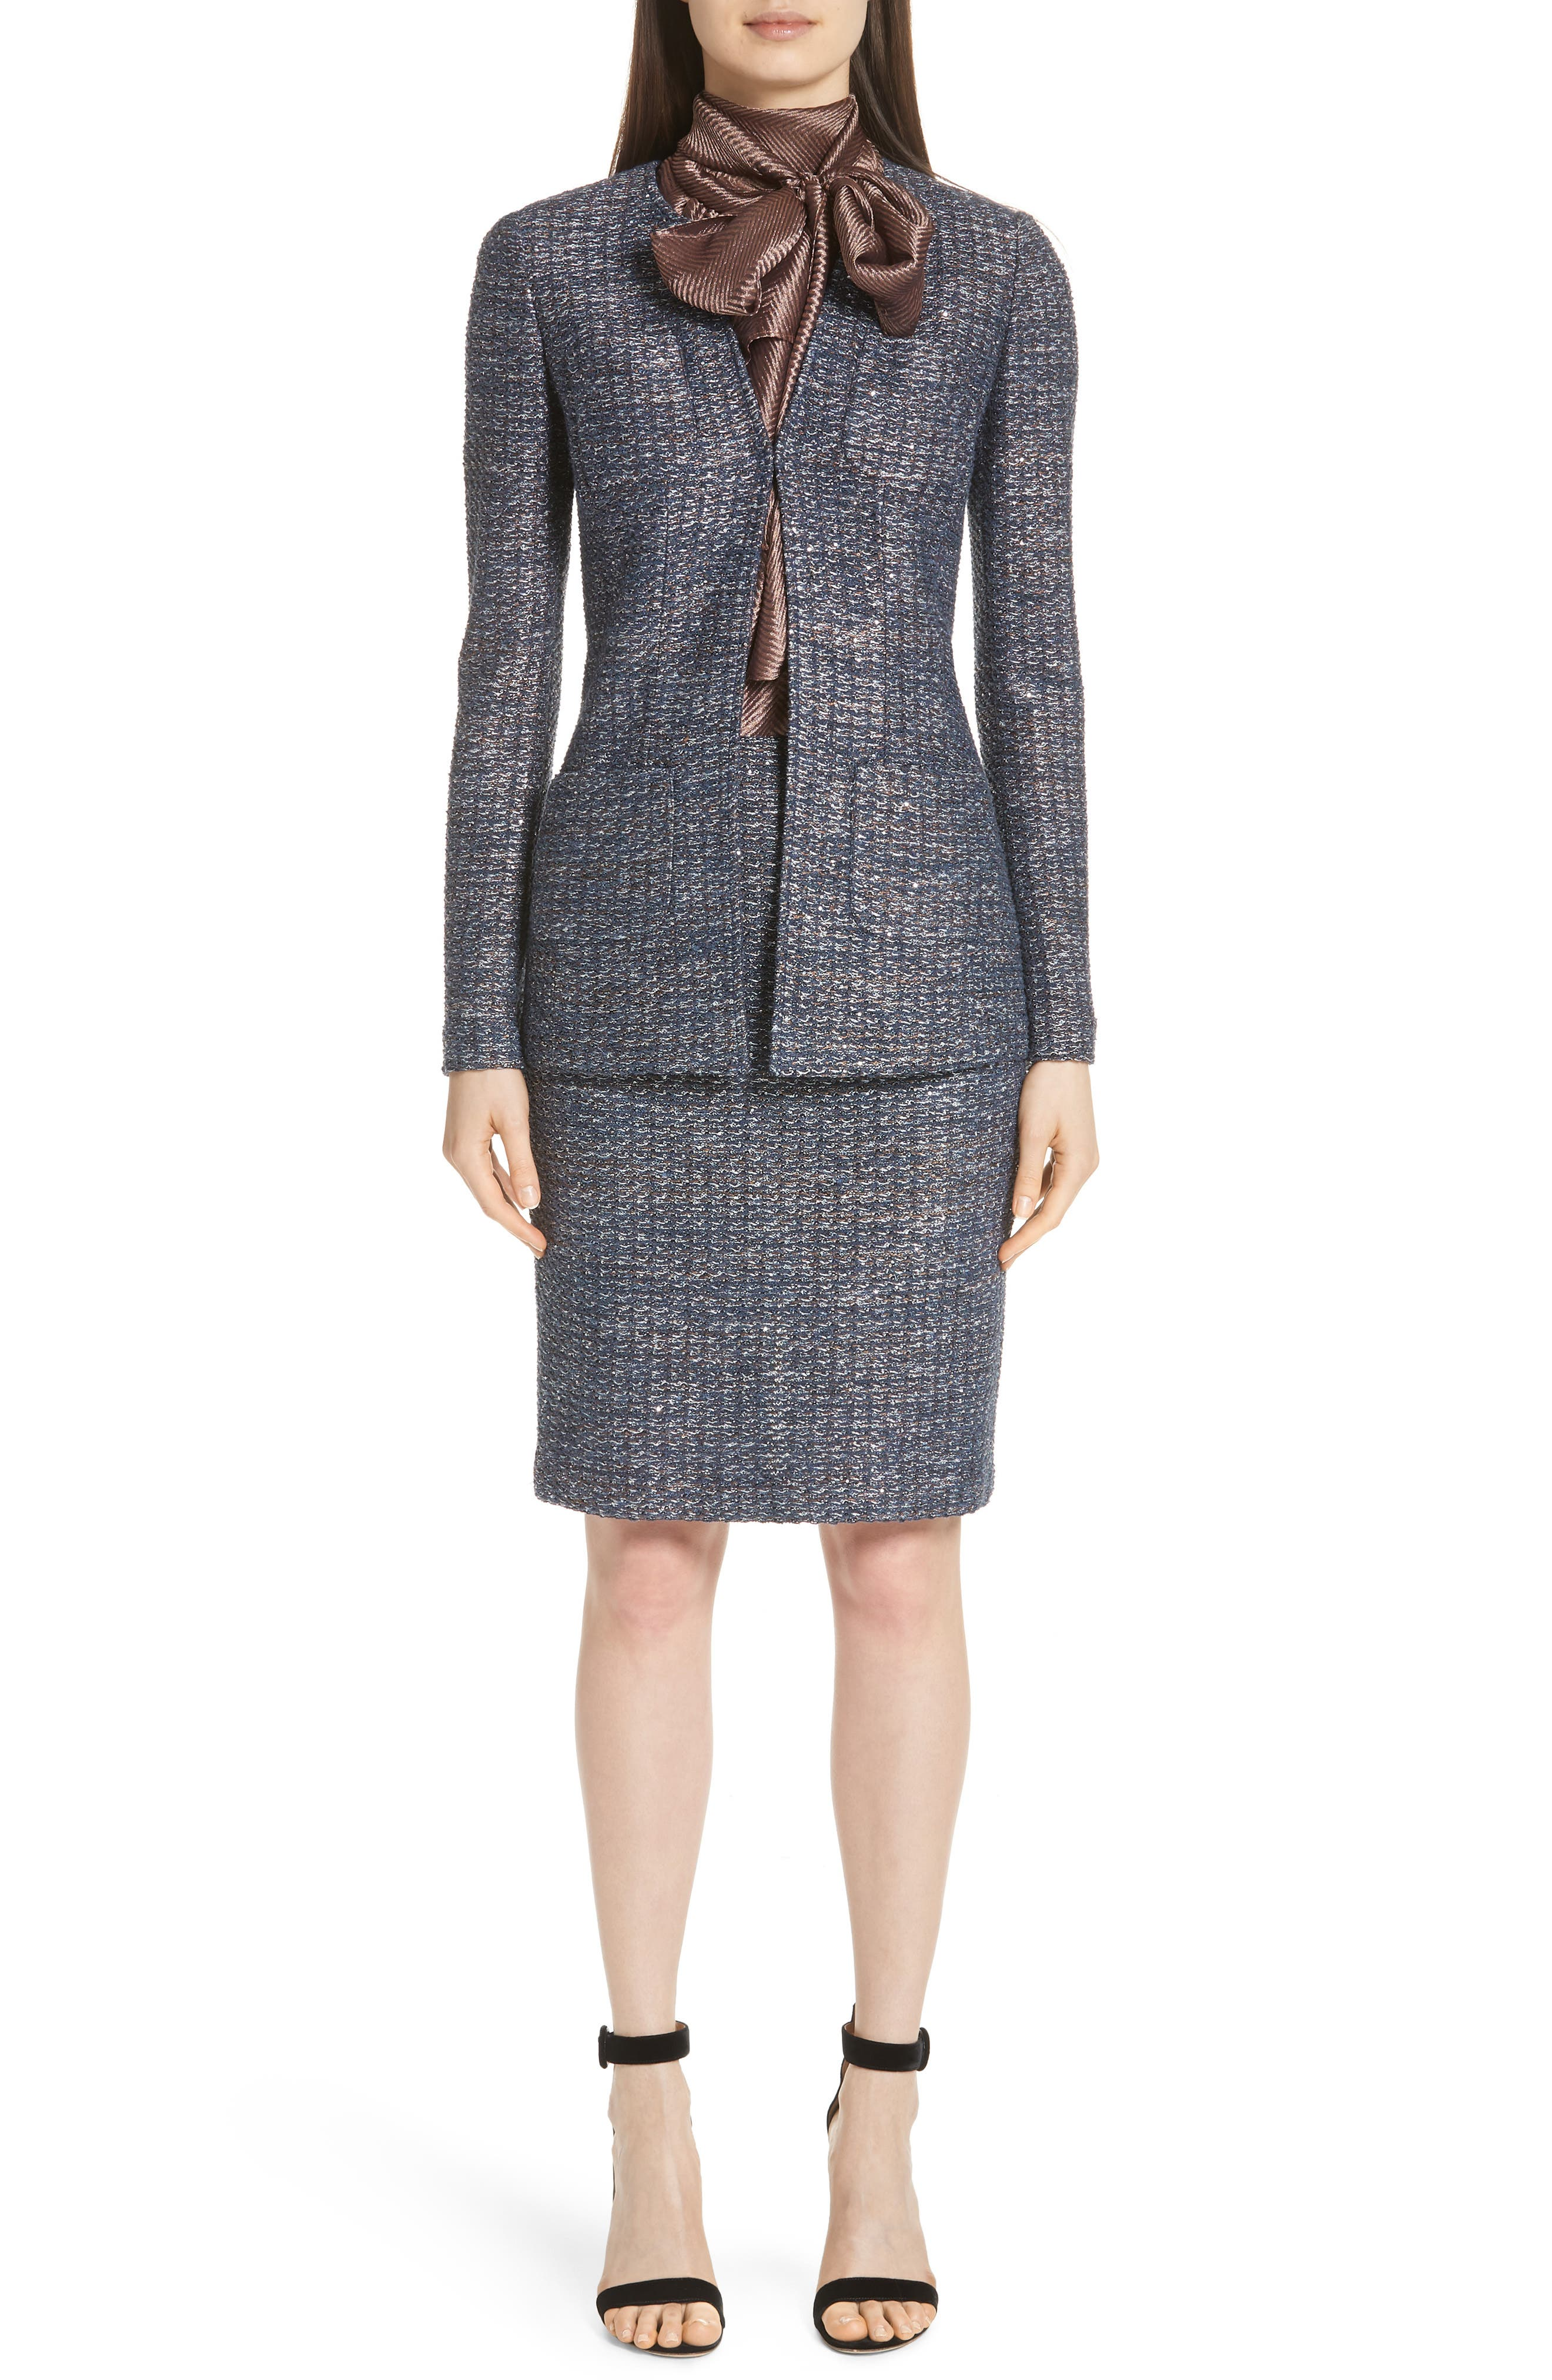 Copper Sequin Tweed Knit Jacket,                             Alternate thumbnail 7, color,                             410